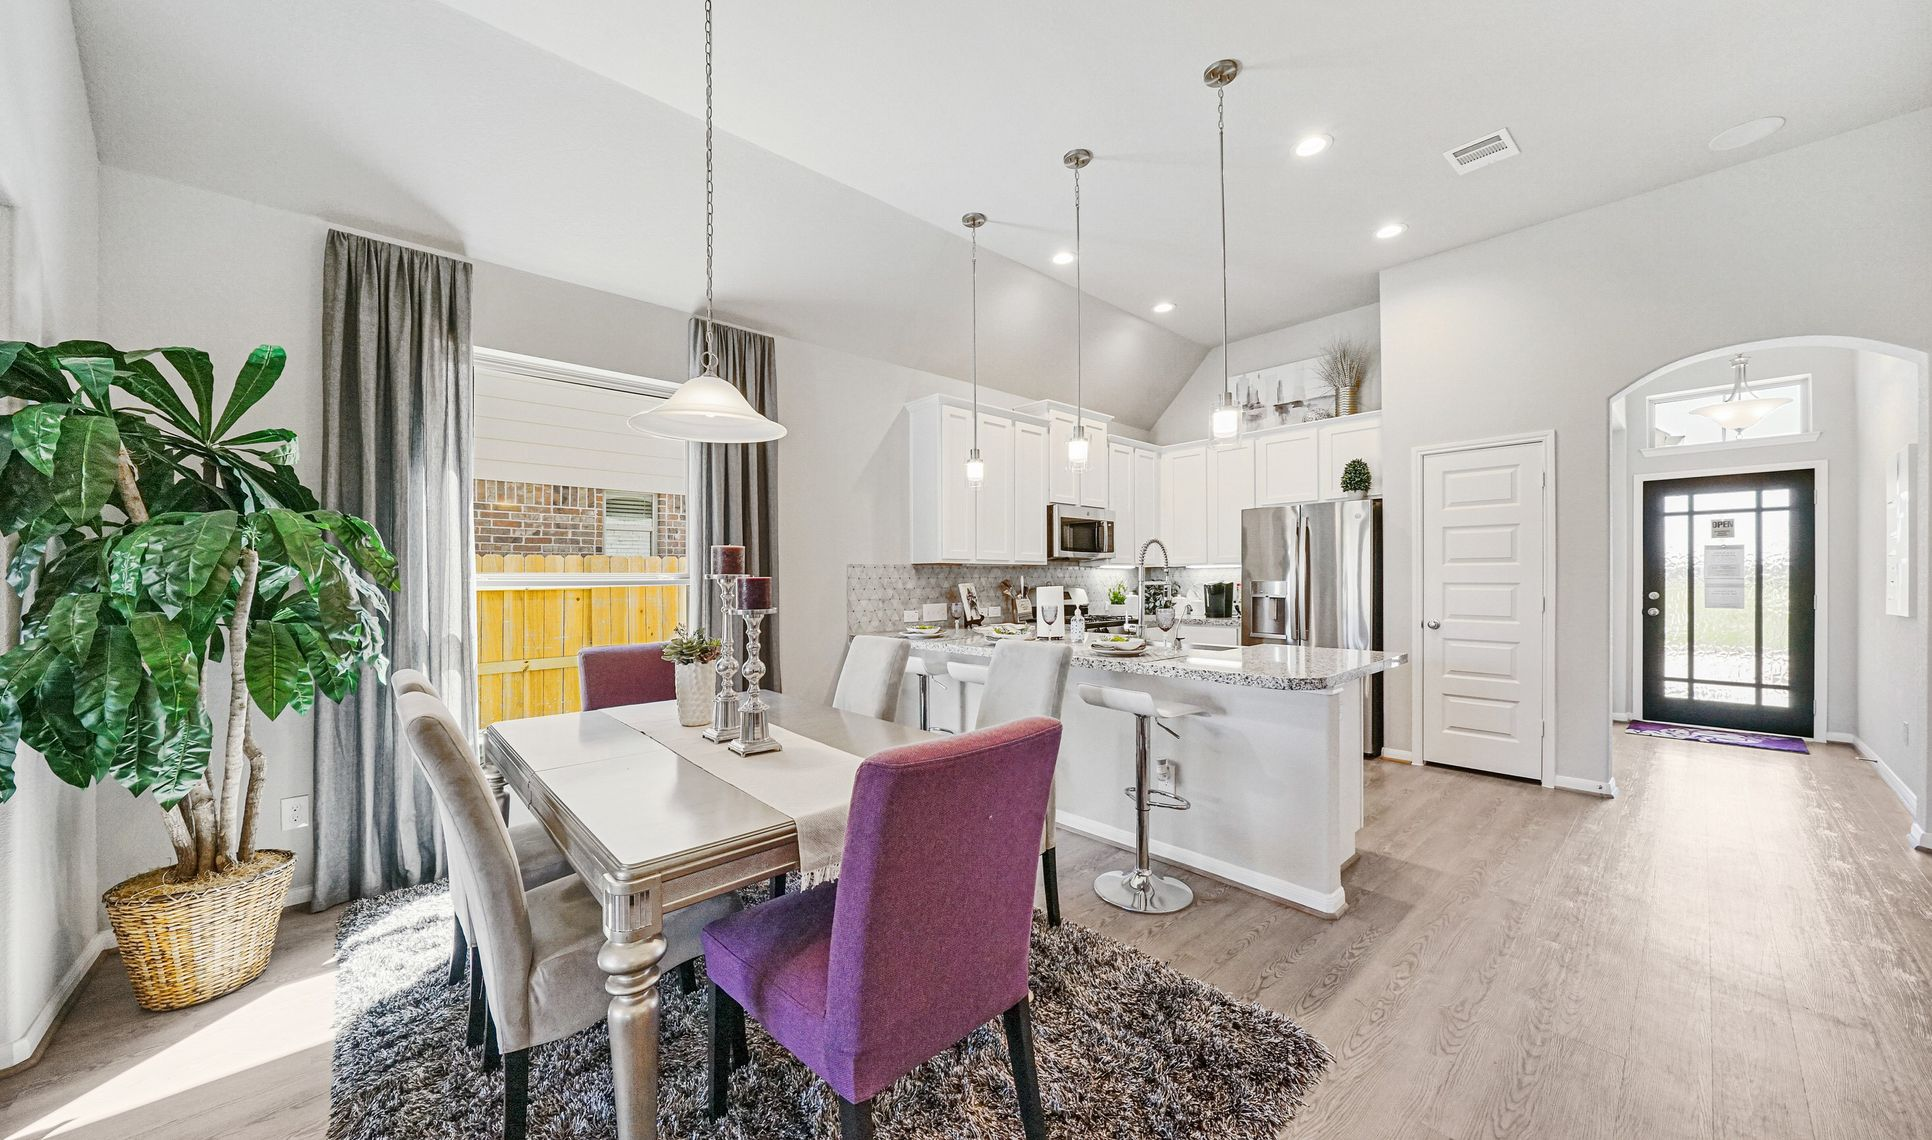 Interior:Dining area is open to the kitchen